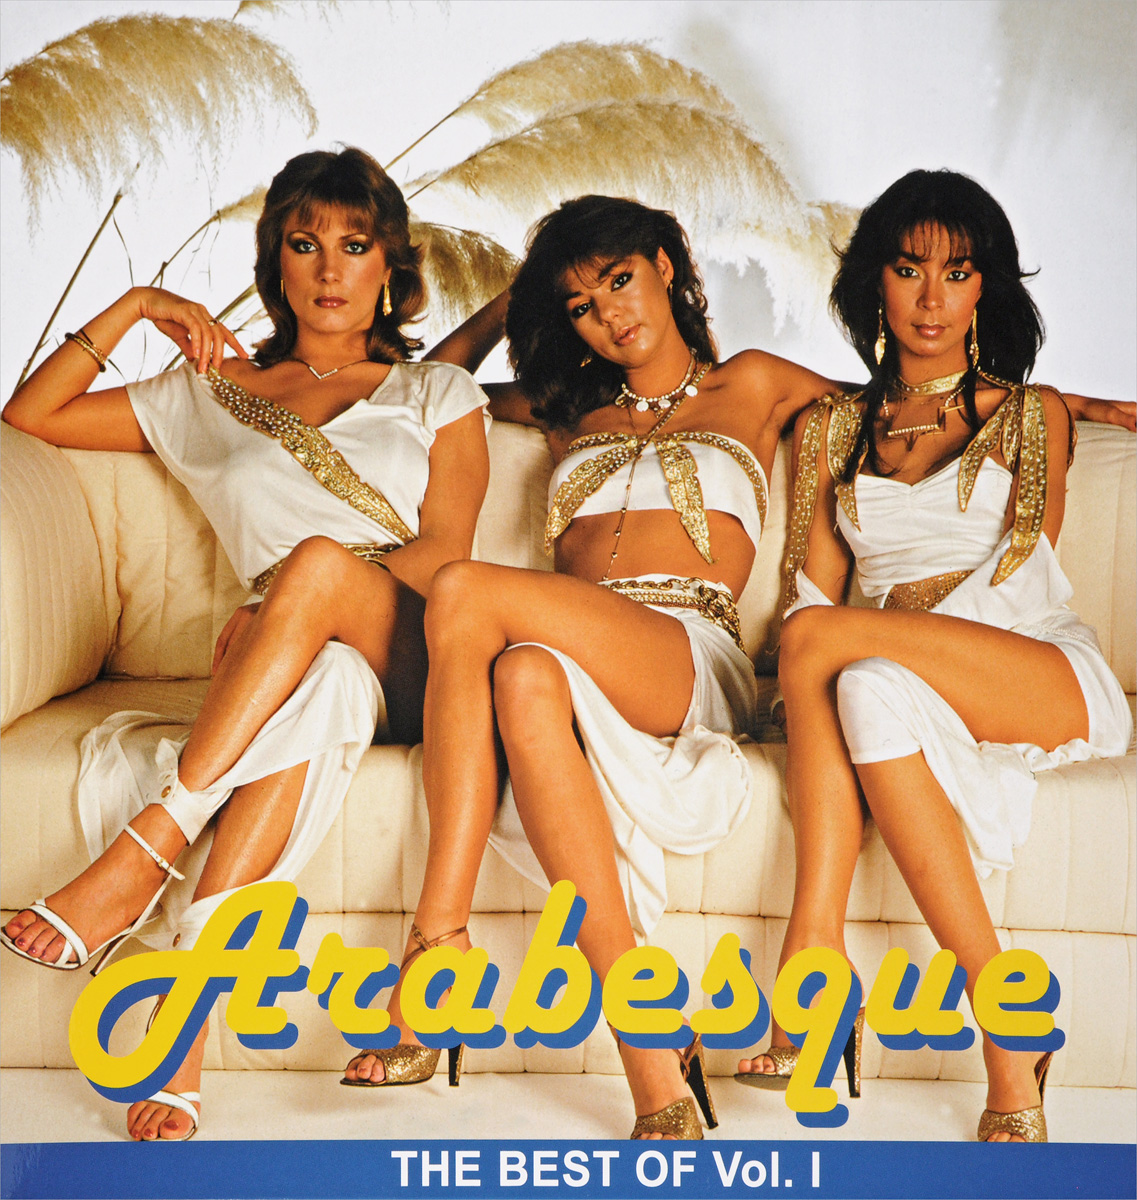 Arabesque Arabesque. The Best of Vol. I (LP) jp 11 9 фигурка пин��вин pavone